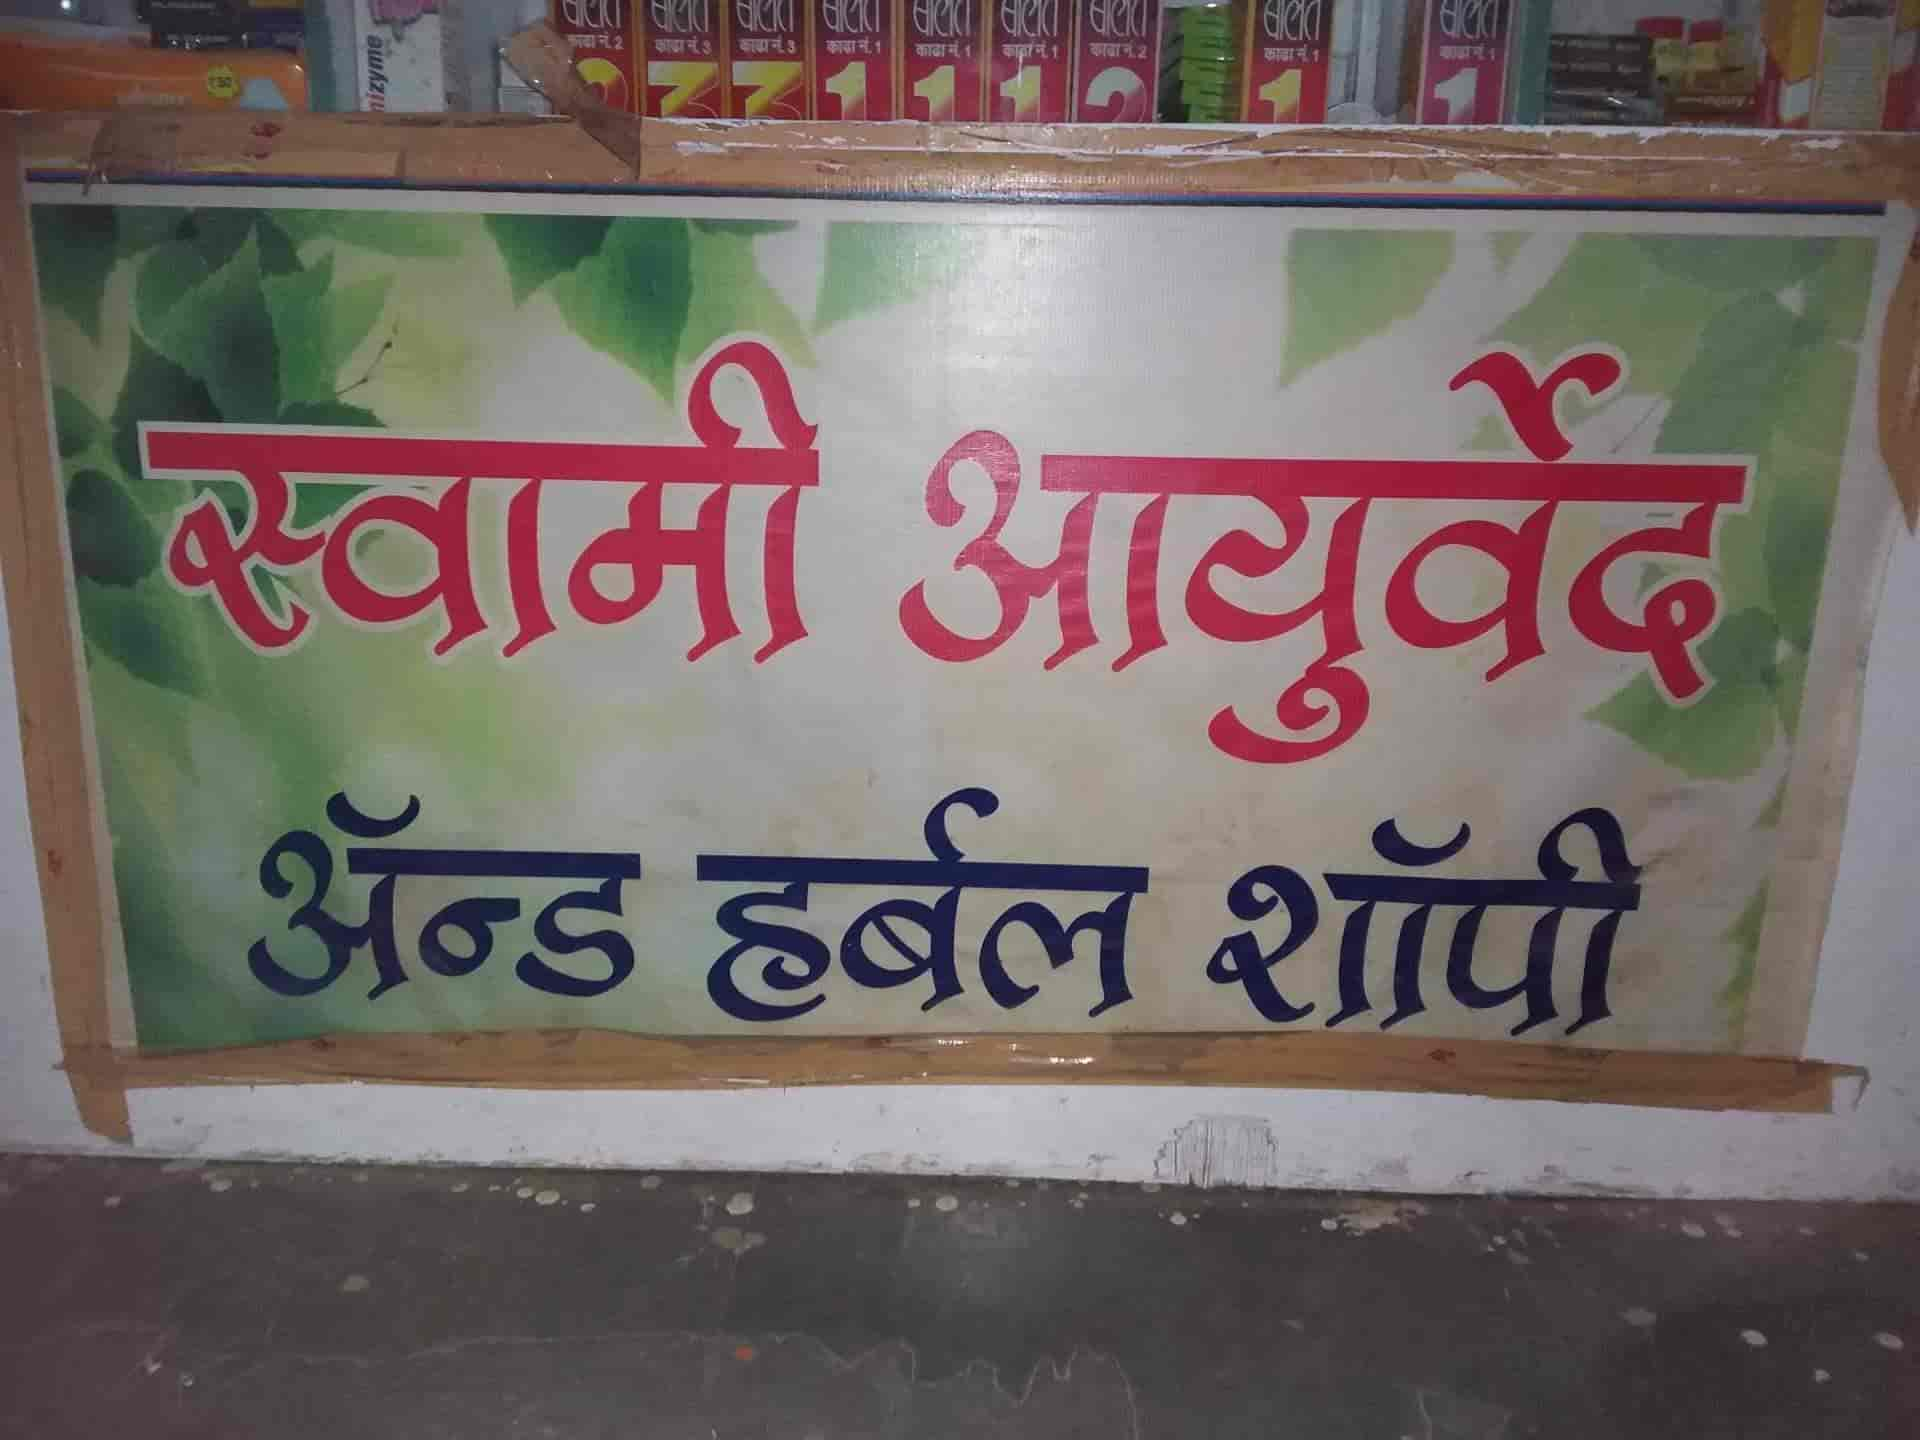 Swami Ayurved & Herbal Shop, Chatrapati Colony - Ayurvedic